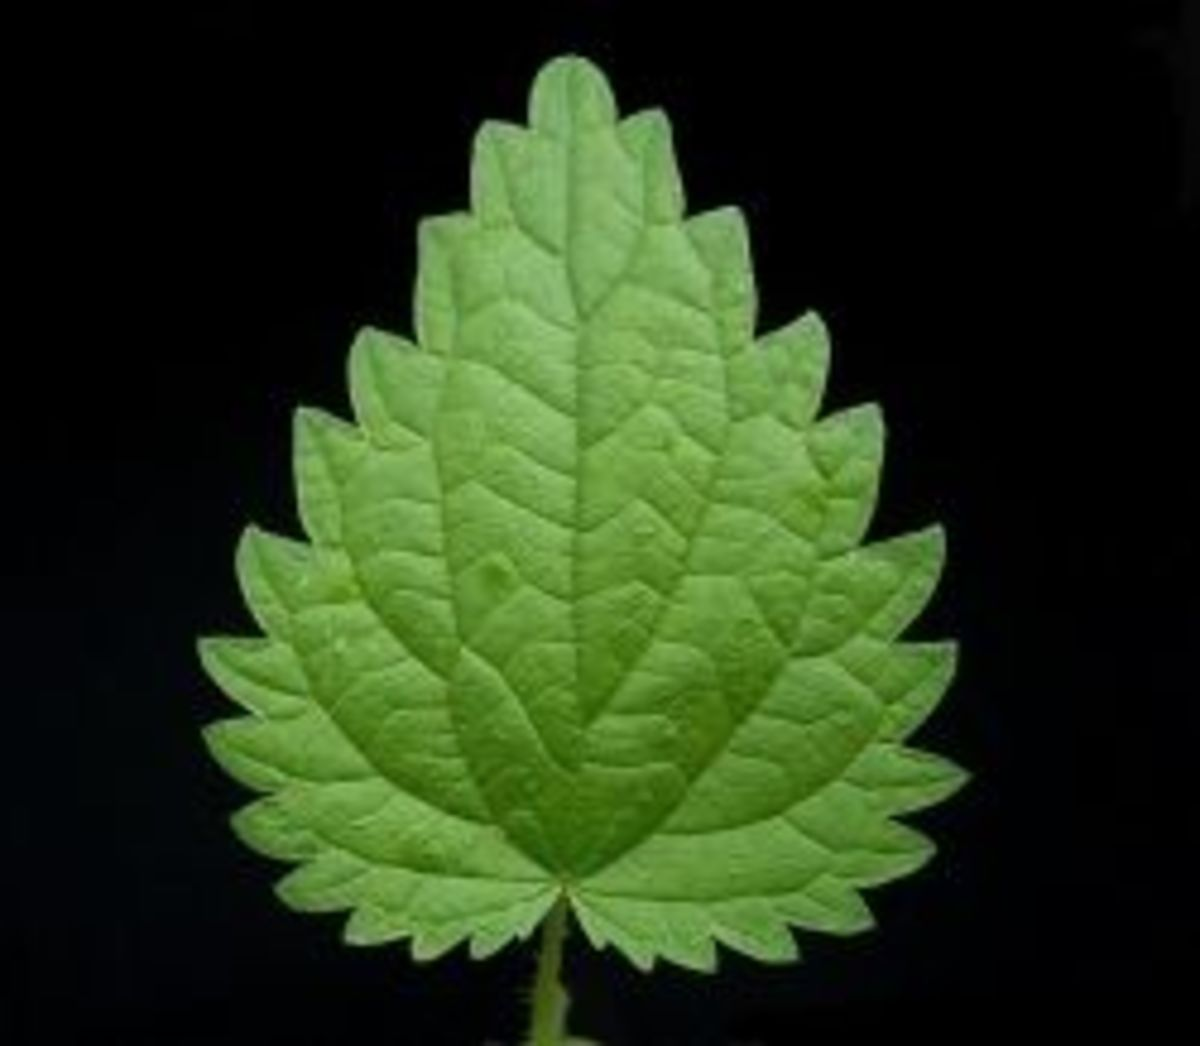 The leaves of the stinging nettle are pointed with a serrated edge and little bumps on the surface.